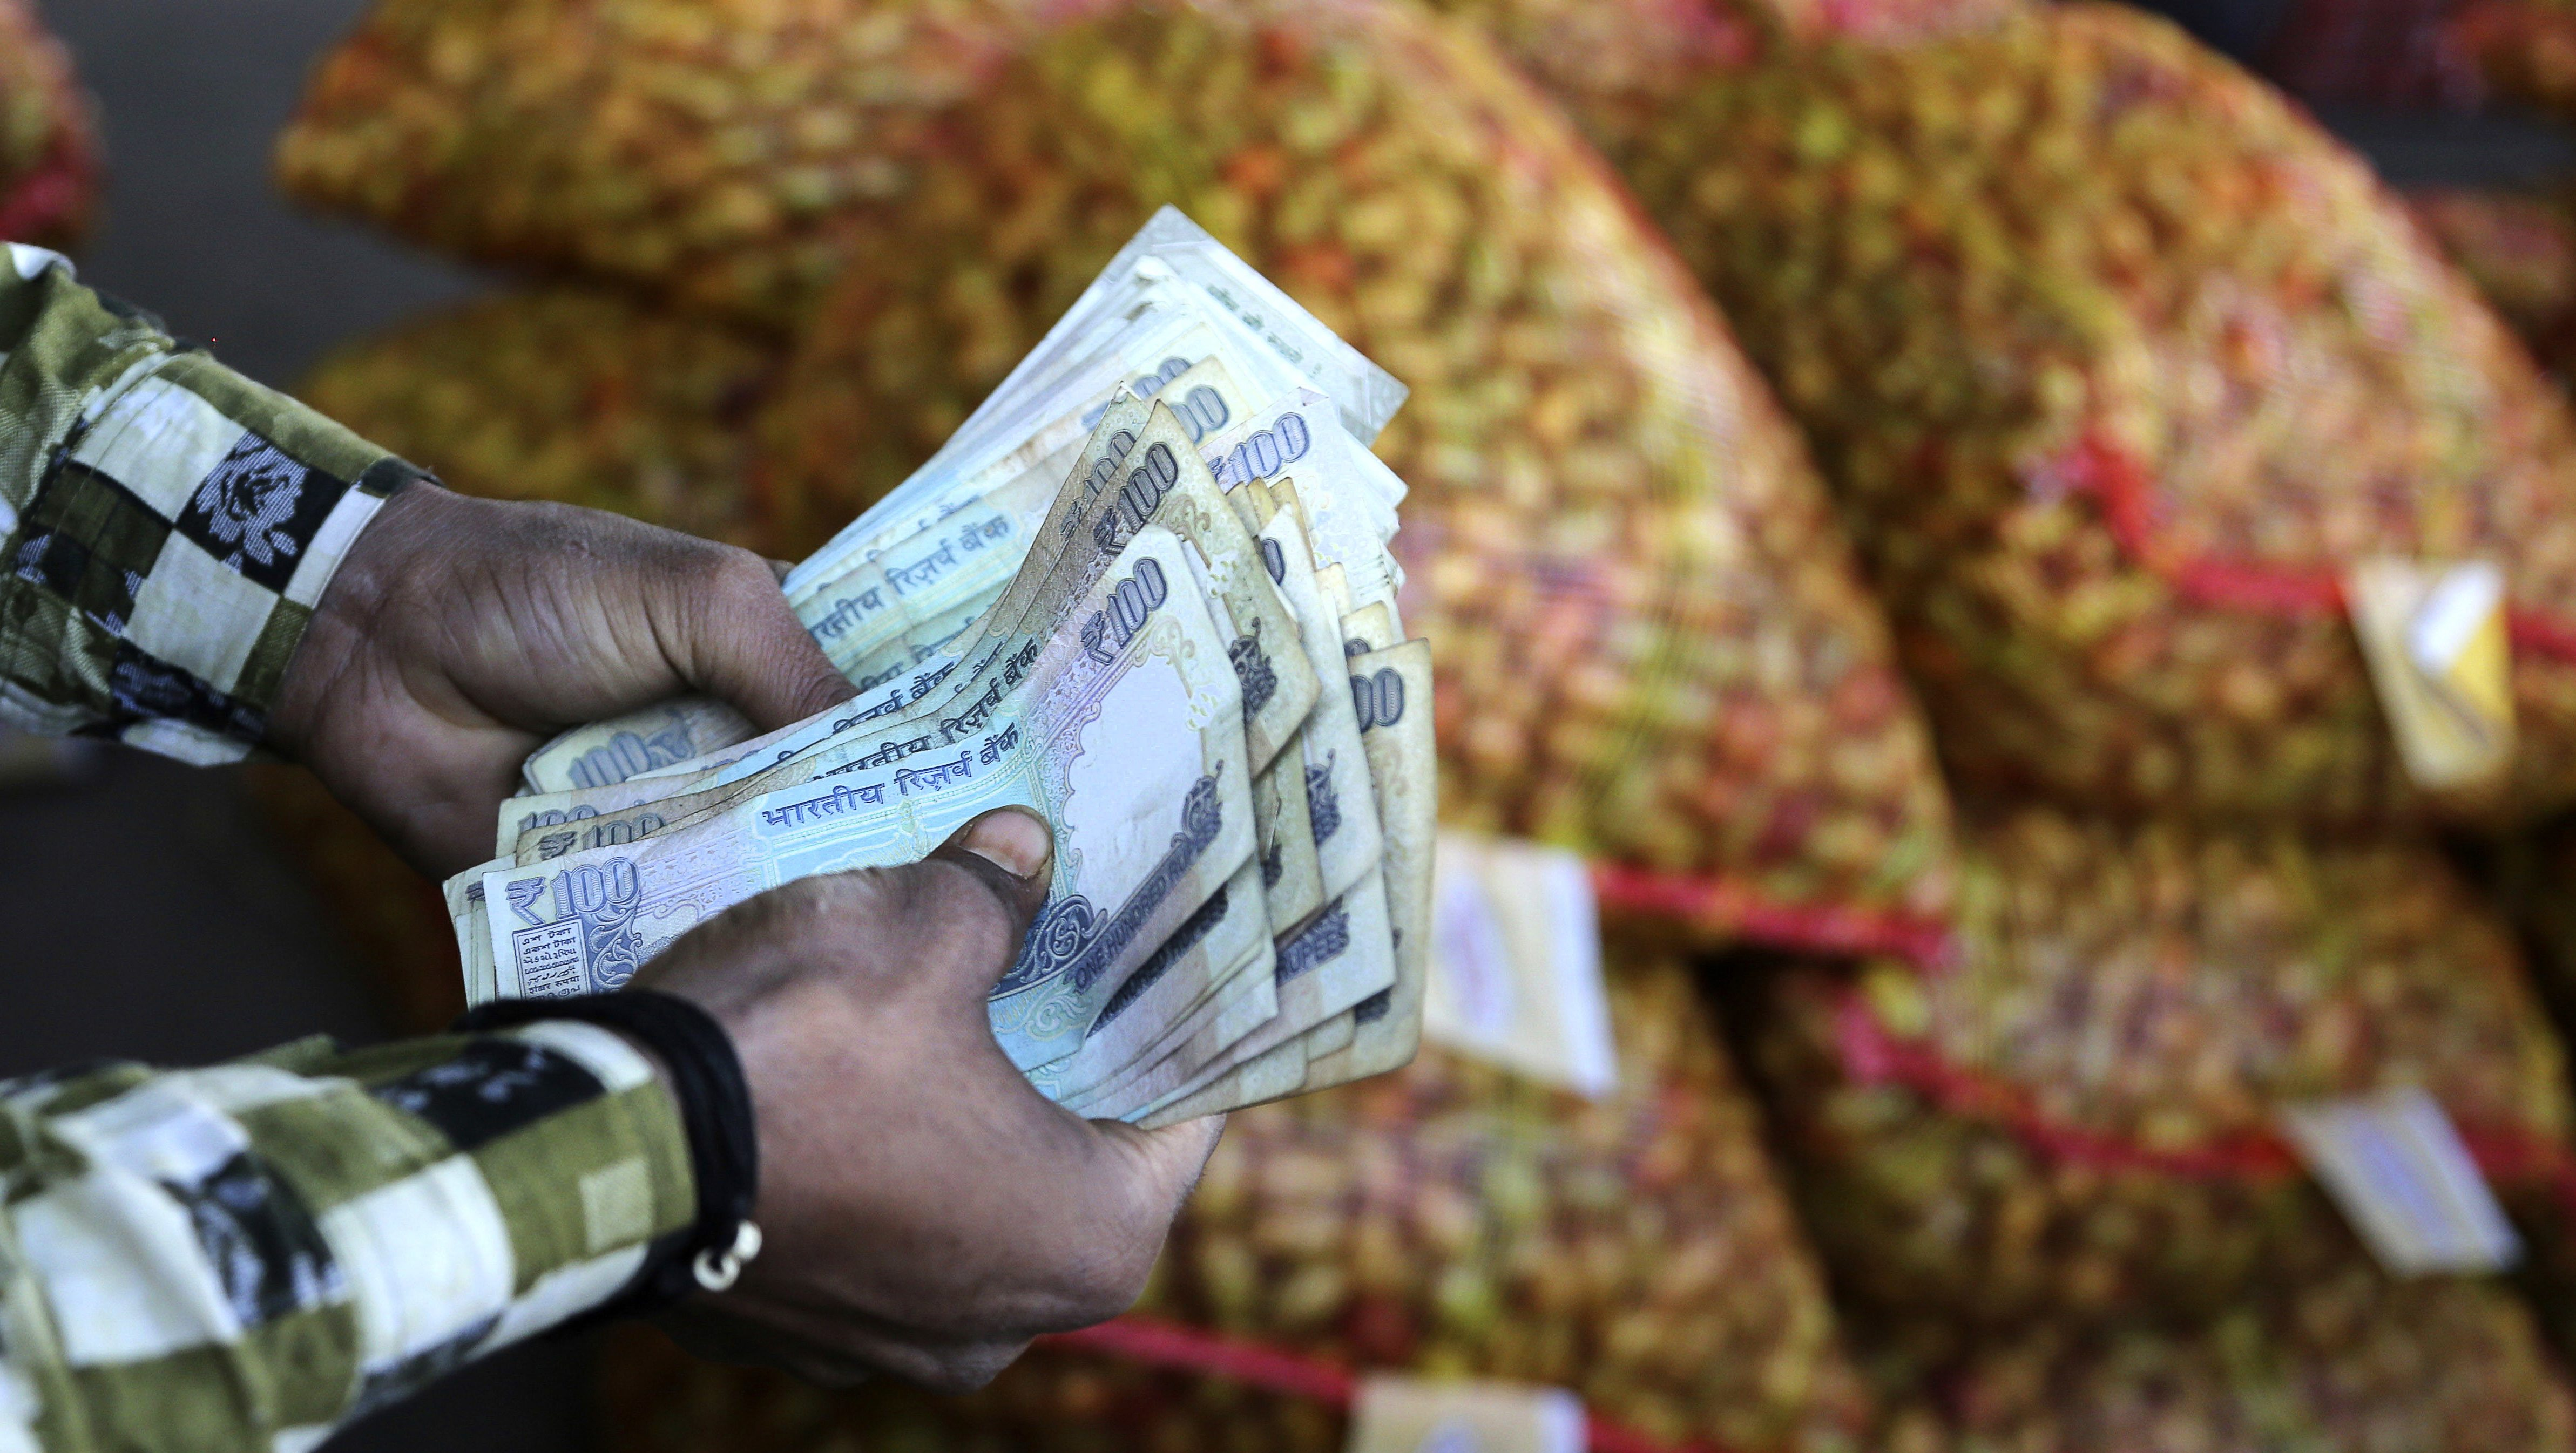 An Indian trader counts rupees at wholesale vegetables market on the outskirts of Jammu, India, Monday, March 6, 2017. India's economy registers a faster-than-expected growth of 7 per cent in fiscal third quarter 2016-17, notwithstanding the demonetization of high-value banknotes in November that caused immense hardship to small businesses dependent on cash transactions.